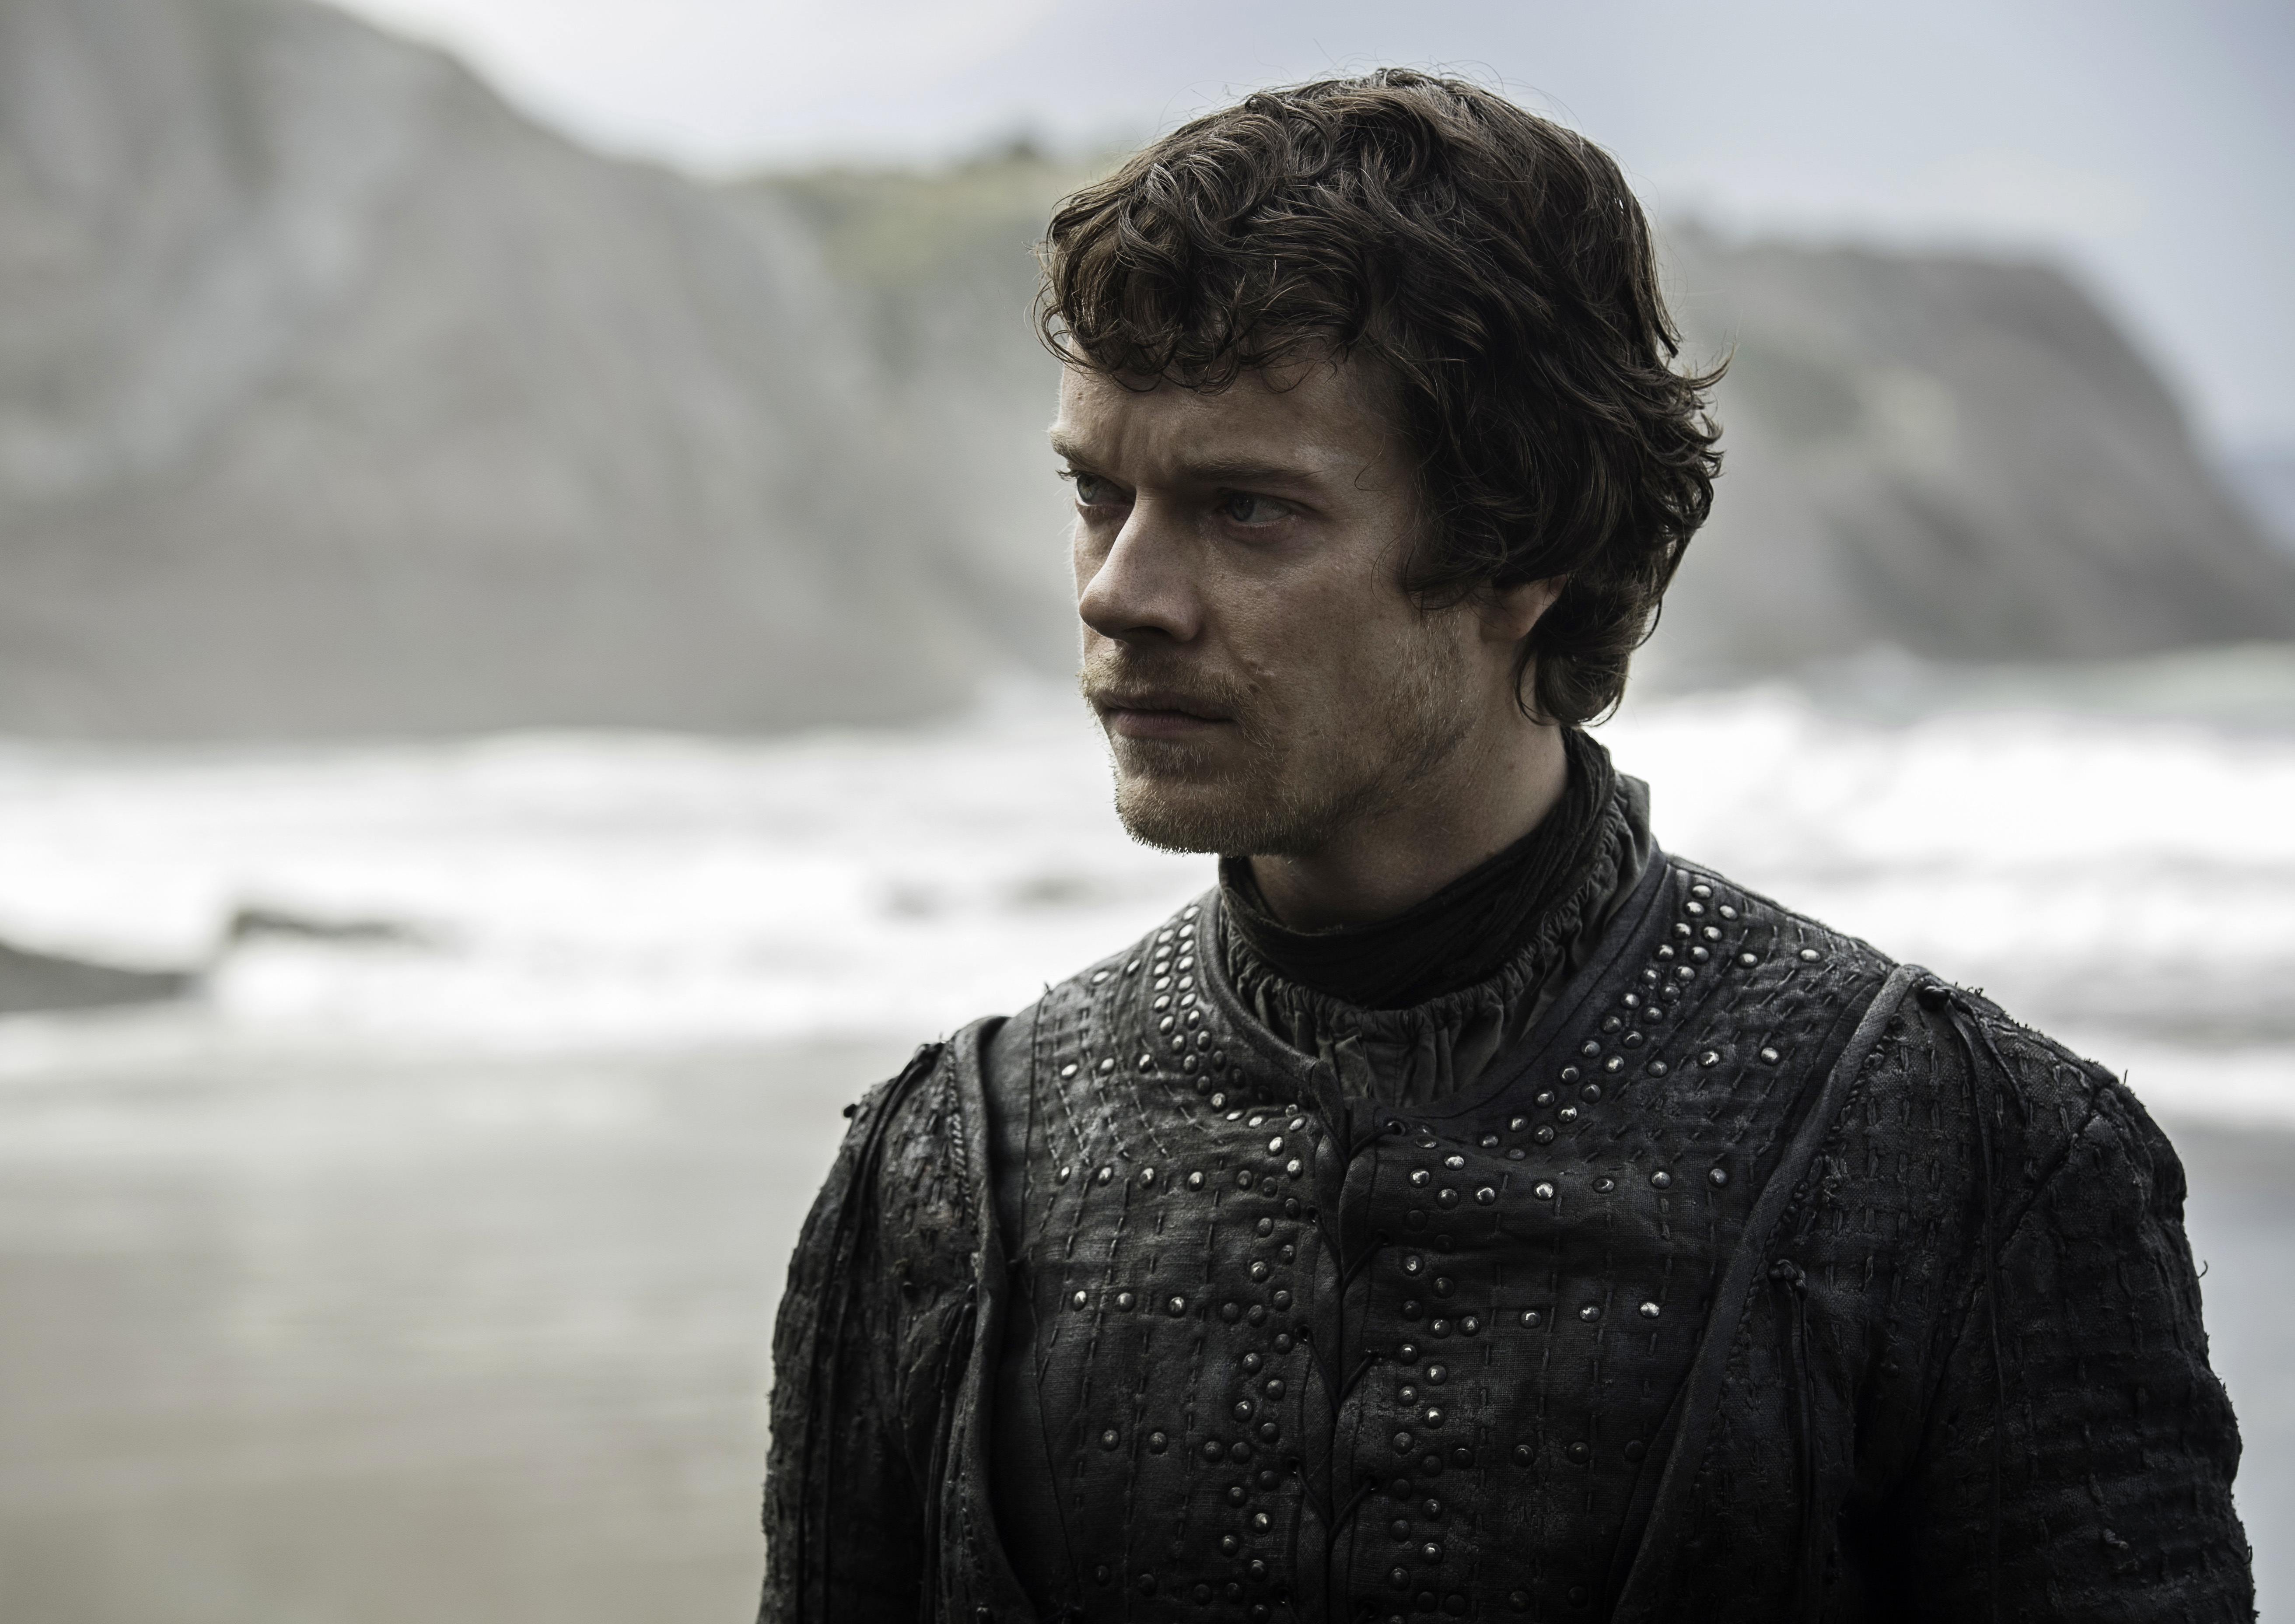 Theon Greyjoy is the Game of Thrones version of Pete Campbell from Mad Men